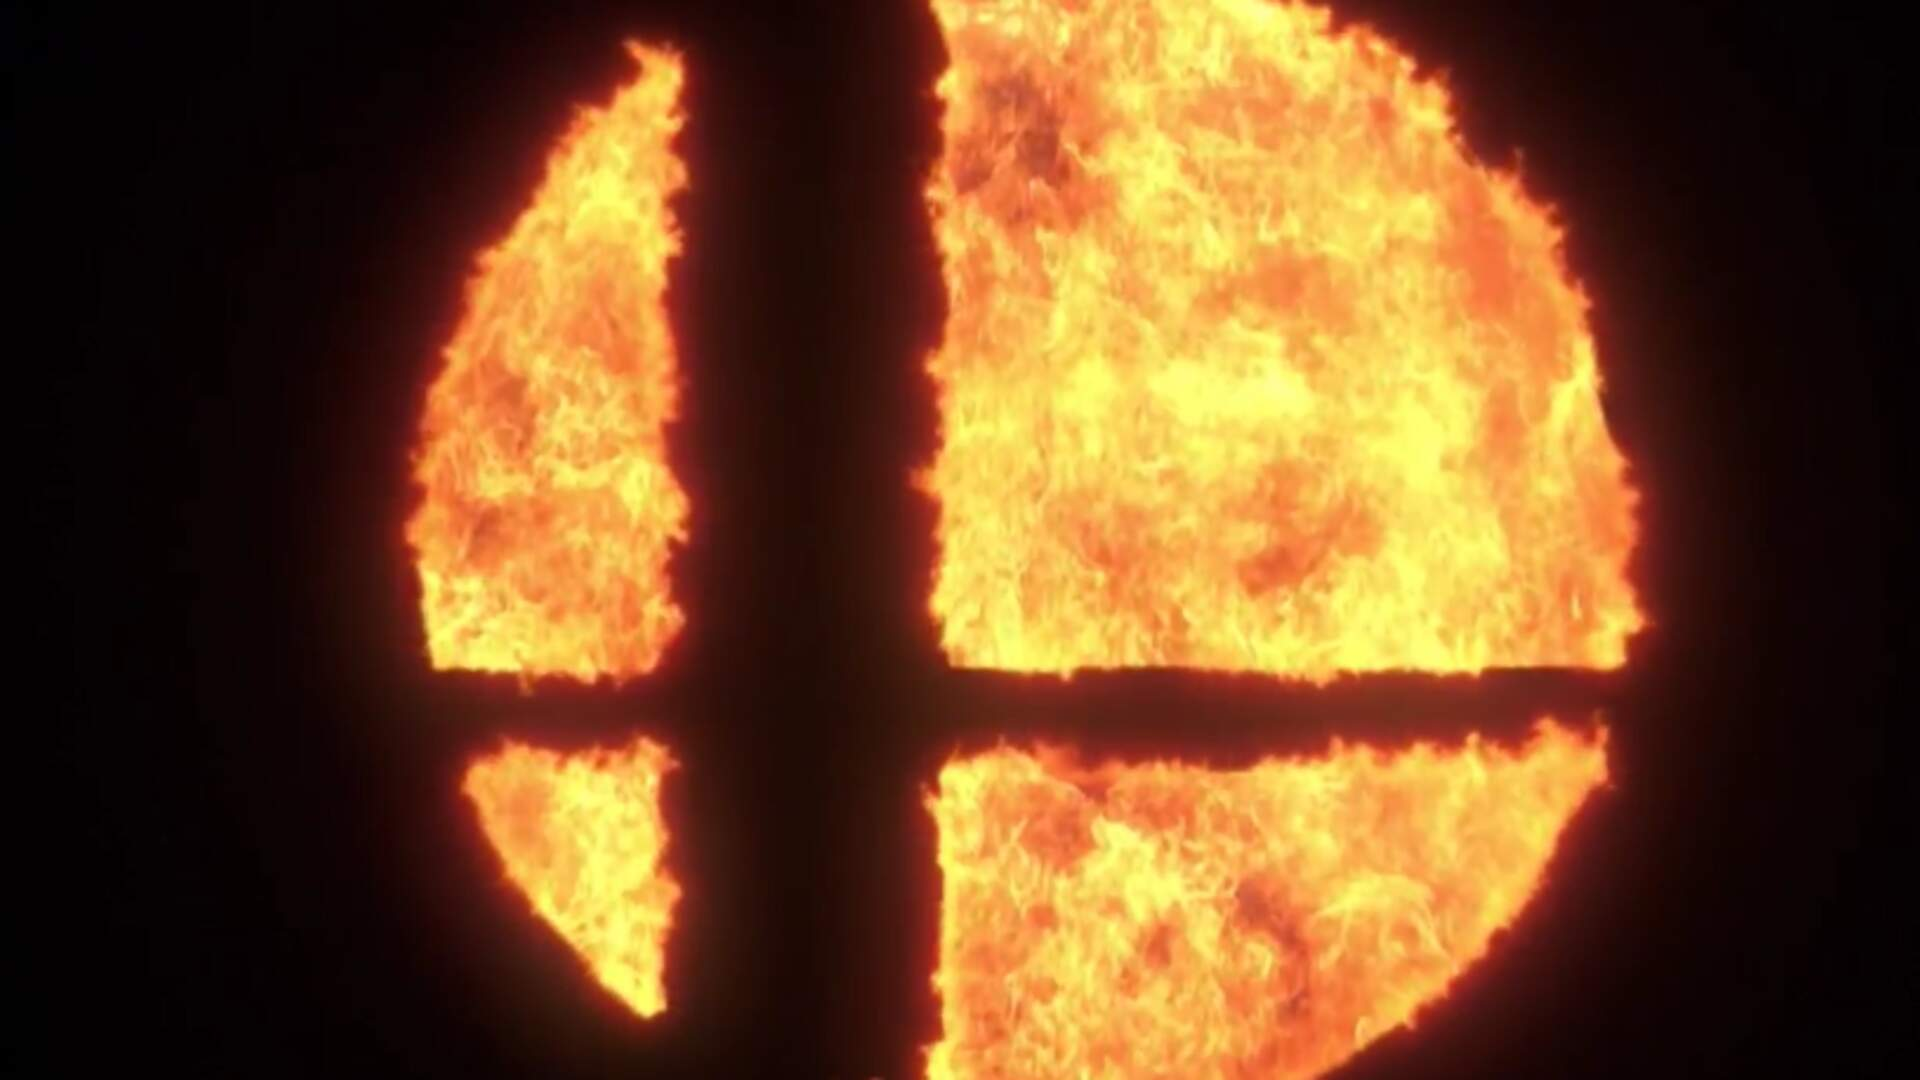 Smash Bros is Coming to the Switch in 2018: First Details